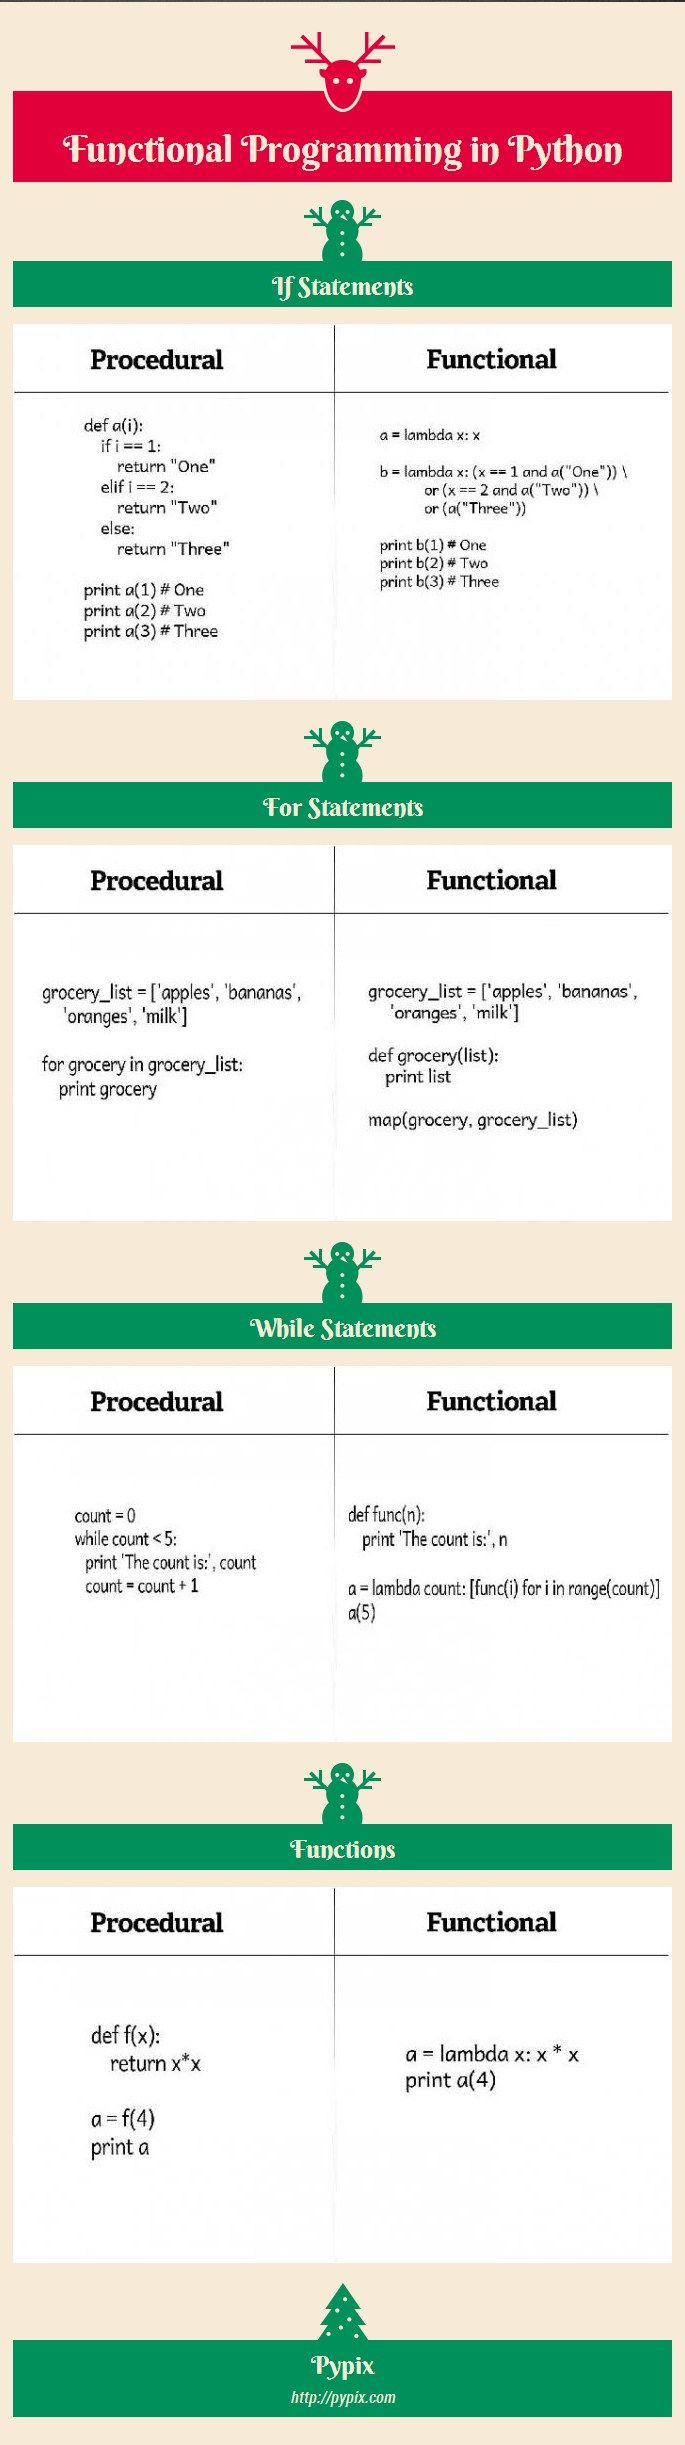 Infographic-Functional-Programming-in-Python-Infogram